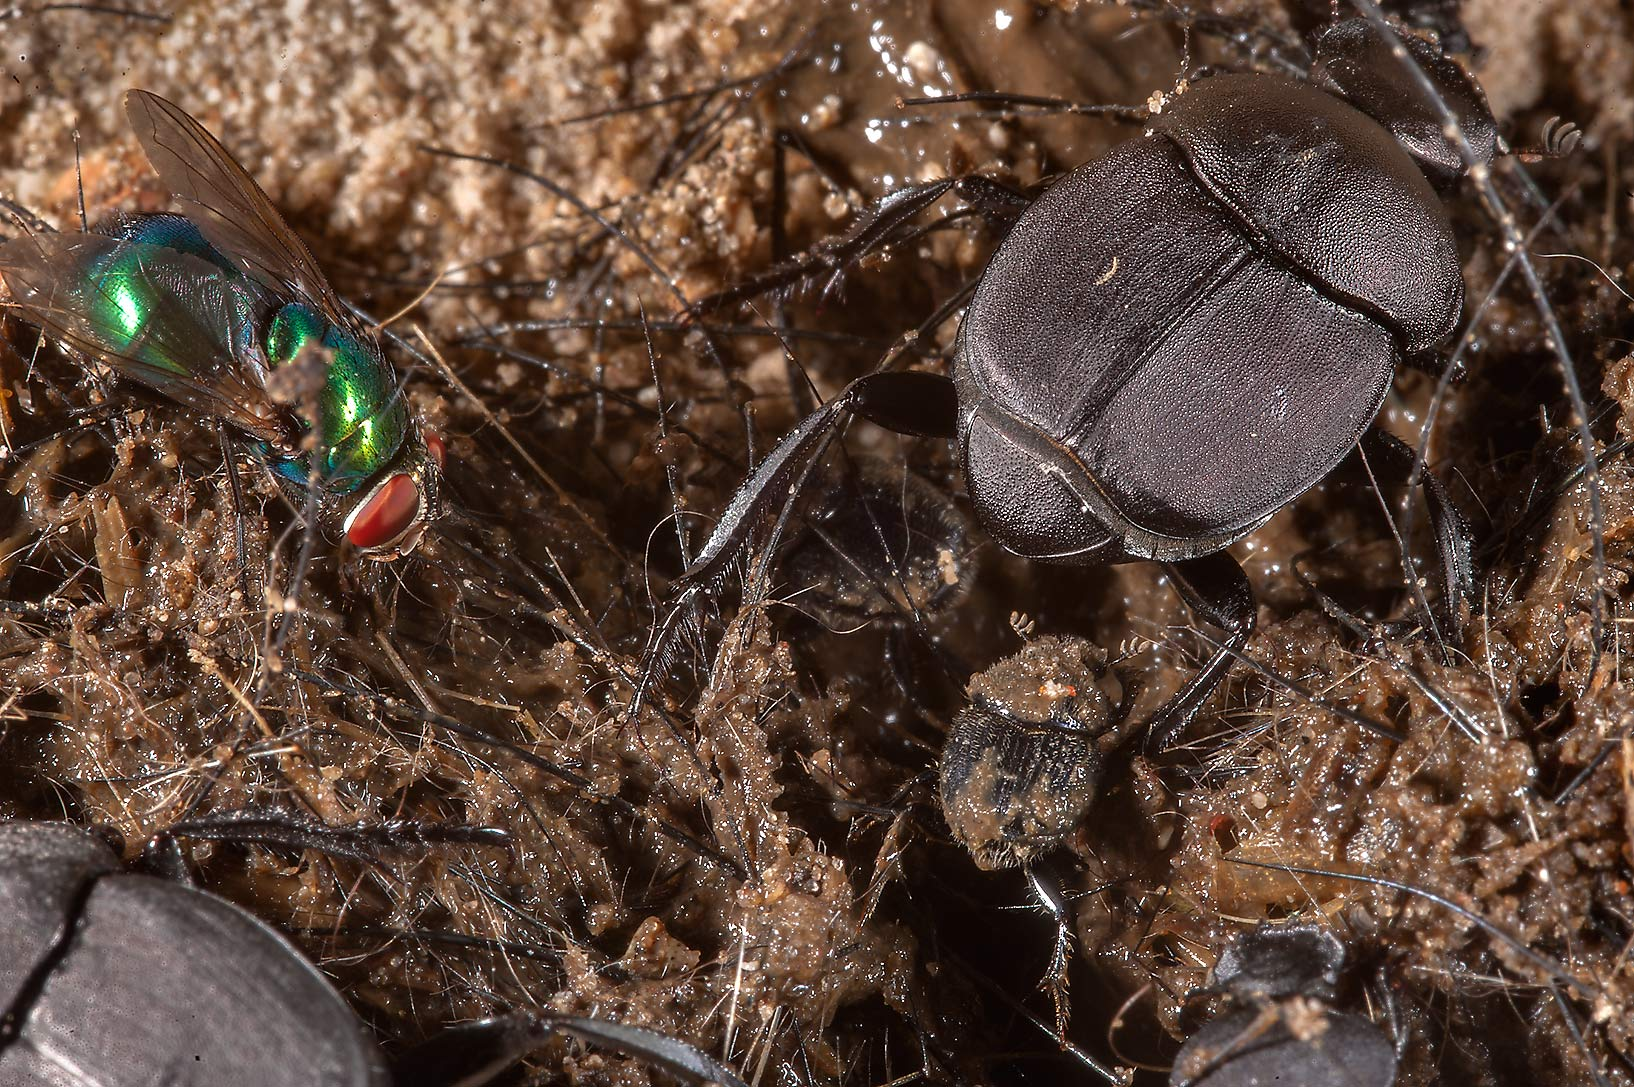 Dung beetles (Scarabeus) on dung like substrate...of Somerville Lake State Park. Texas